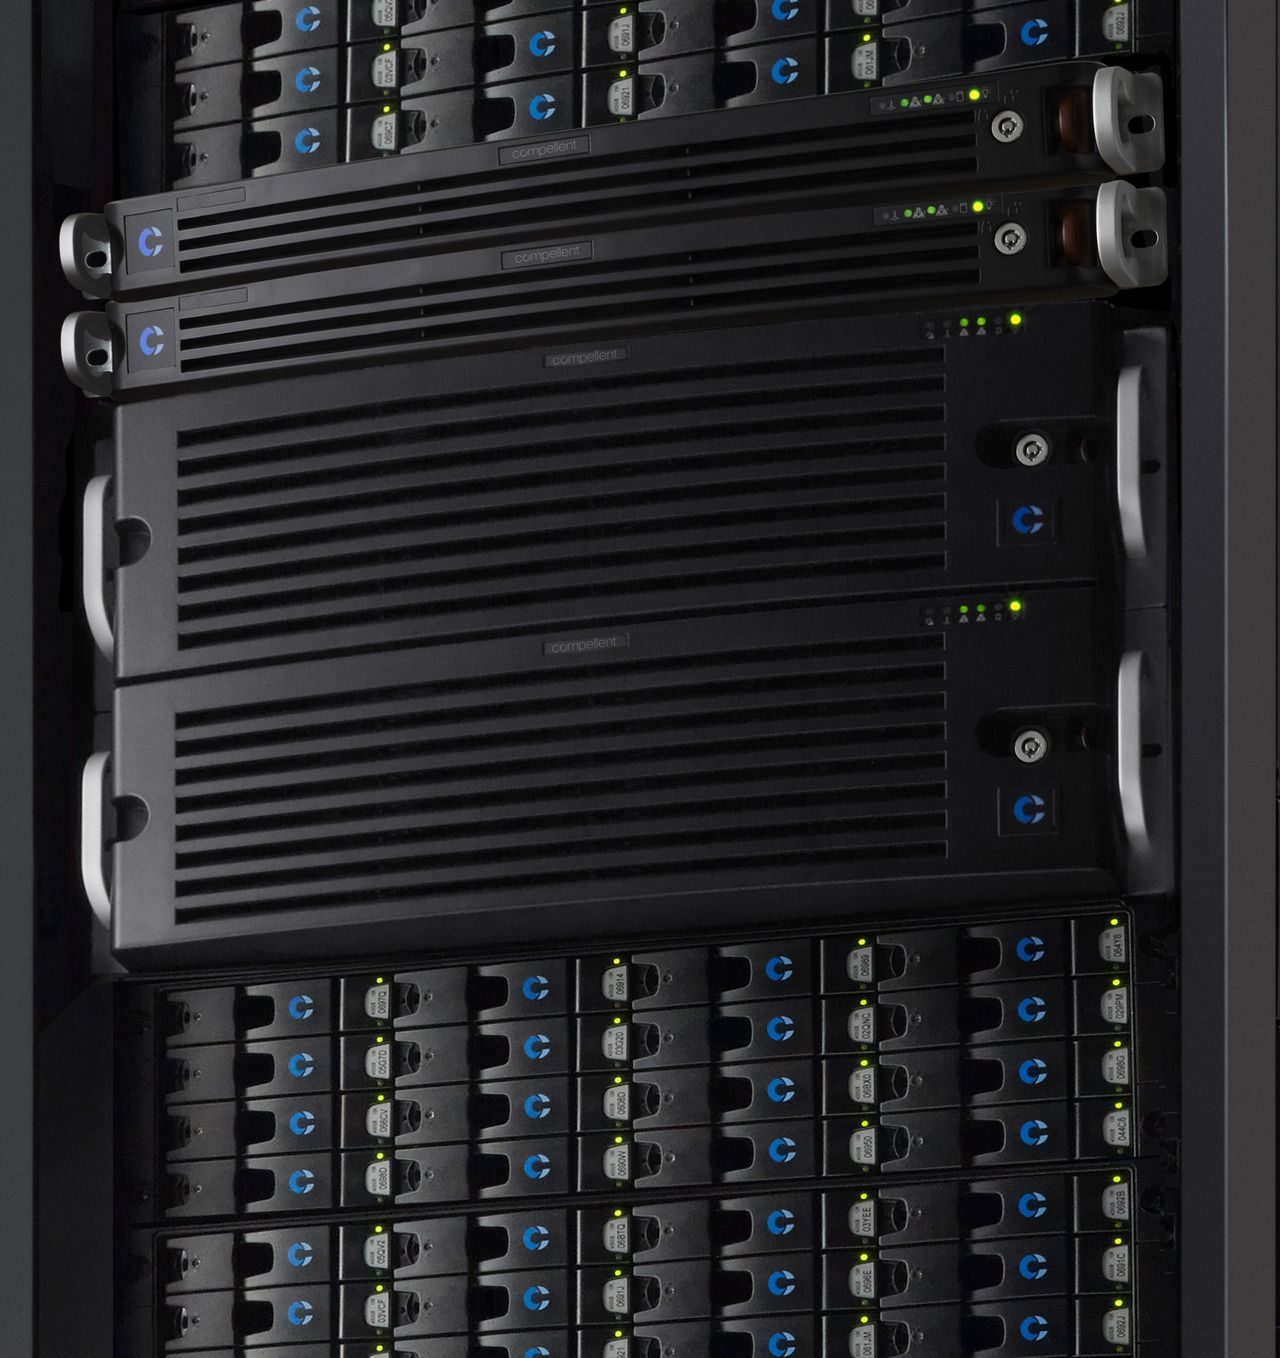 Dell Compellent Znas A Highly Scalable Zfs File Server With Clustering Support File Server Network Infrastructure Server